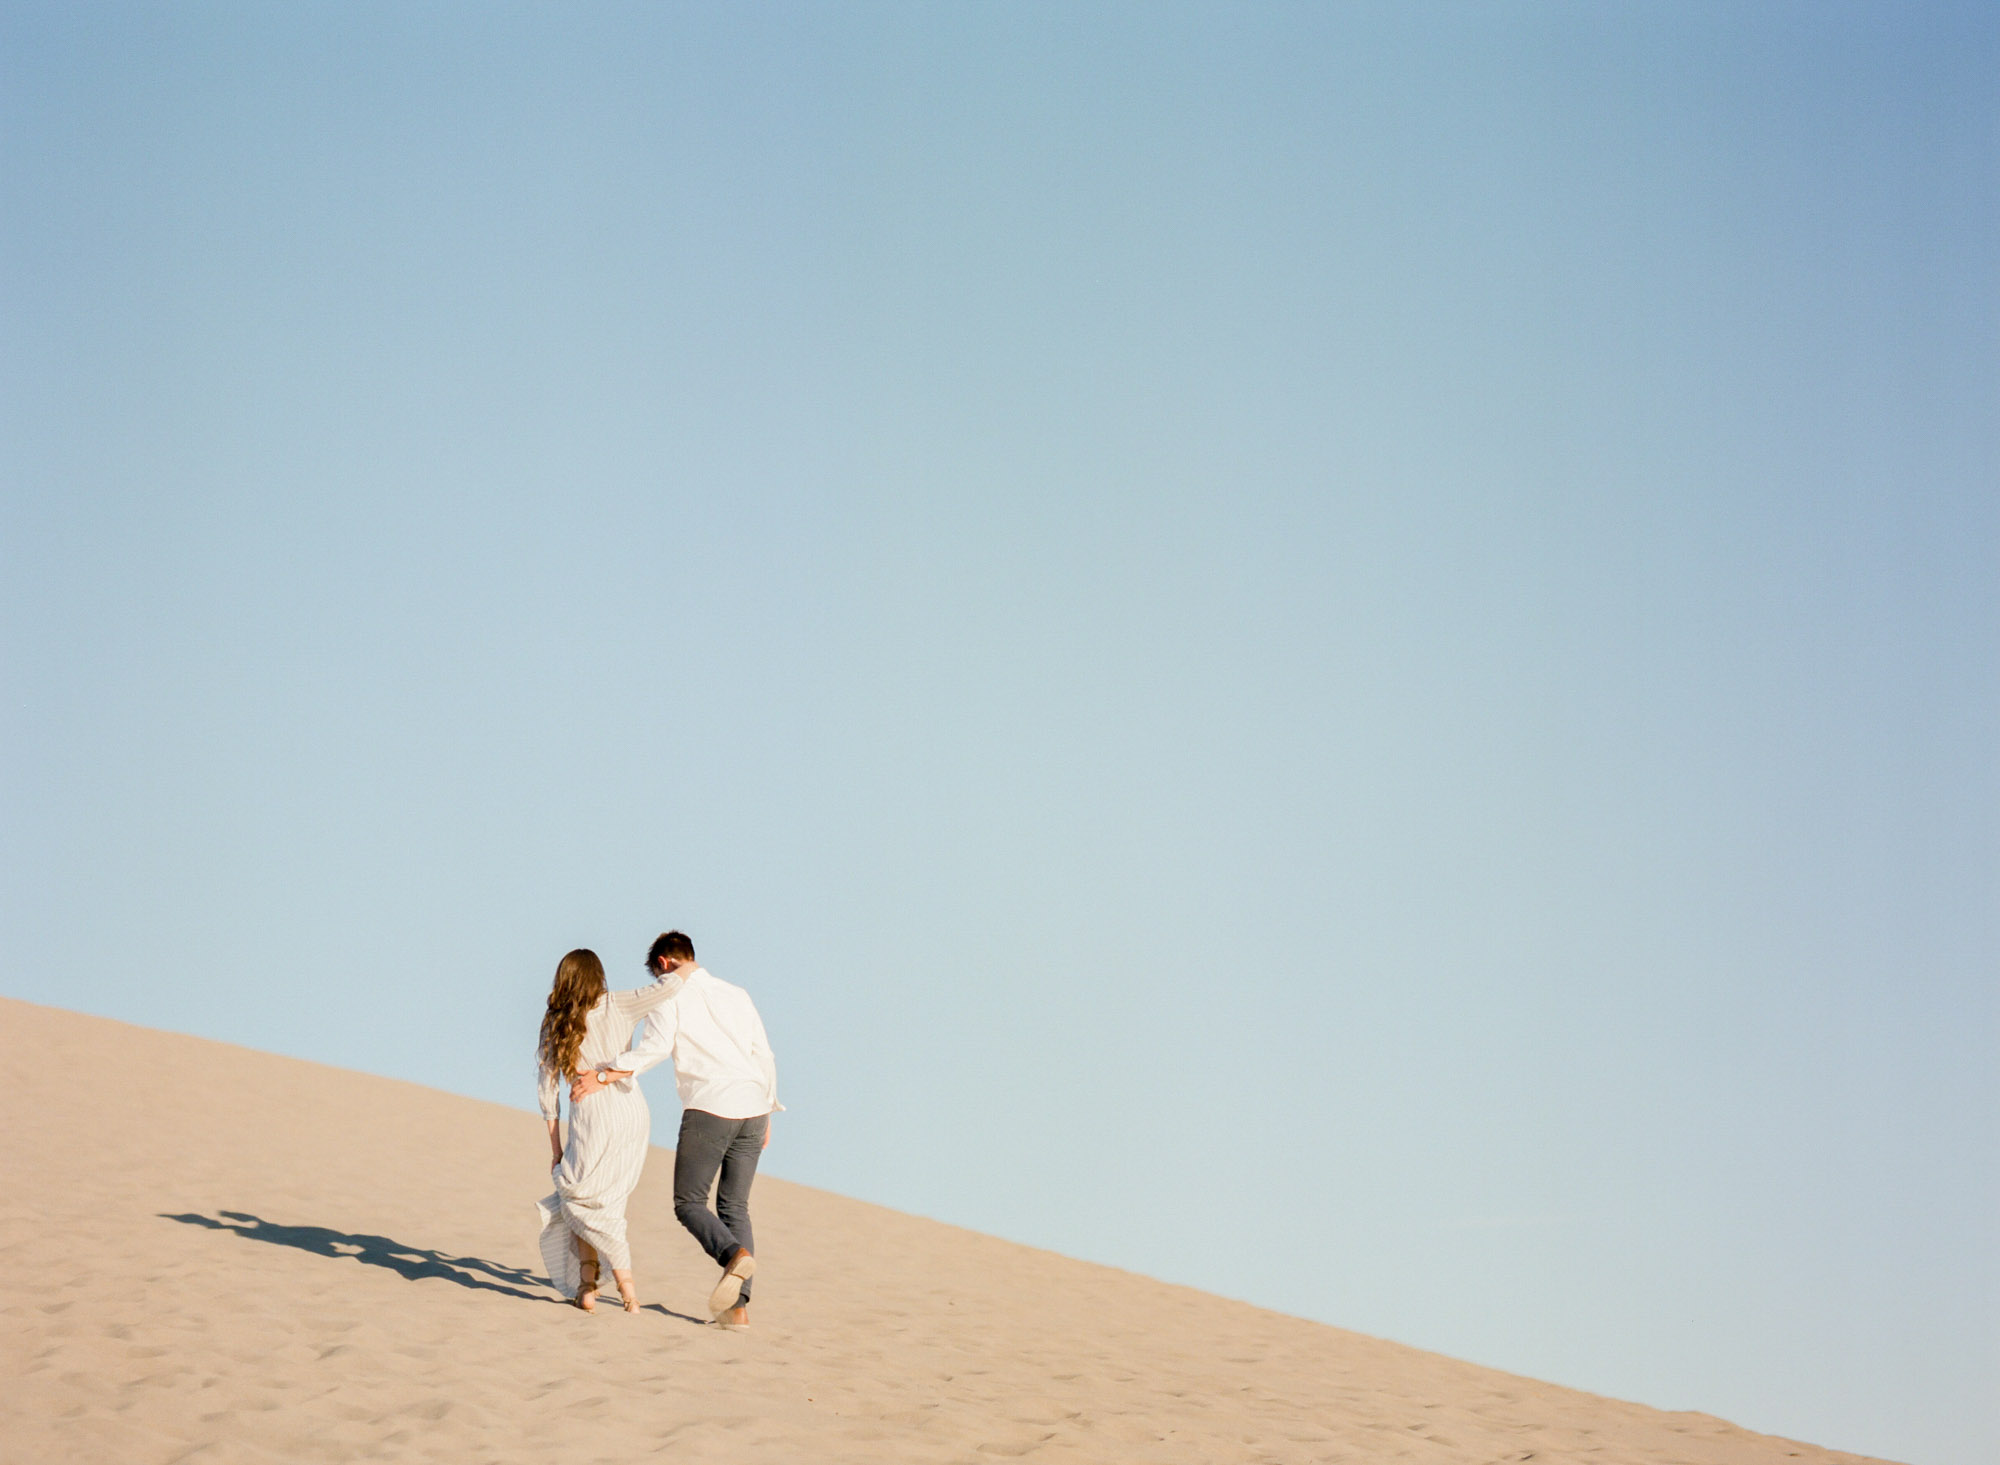 sand_dunes_bruneau_idaho_lynchburg_charlottesville_richmond_film_wedding_photographer-3.jpg